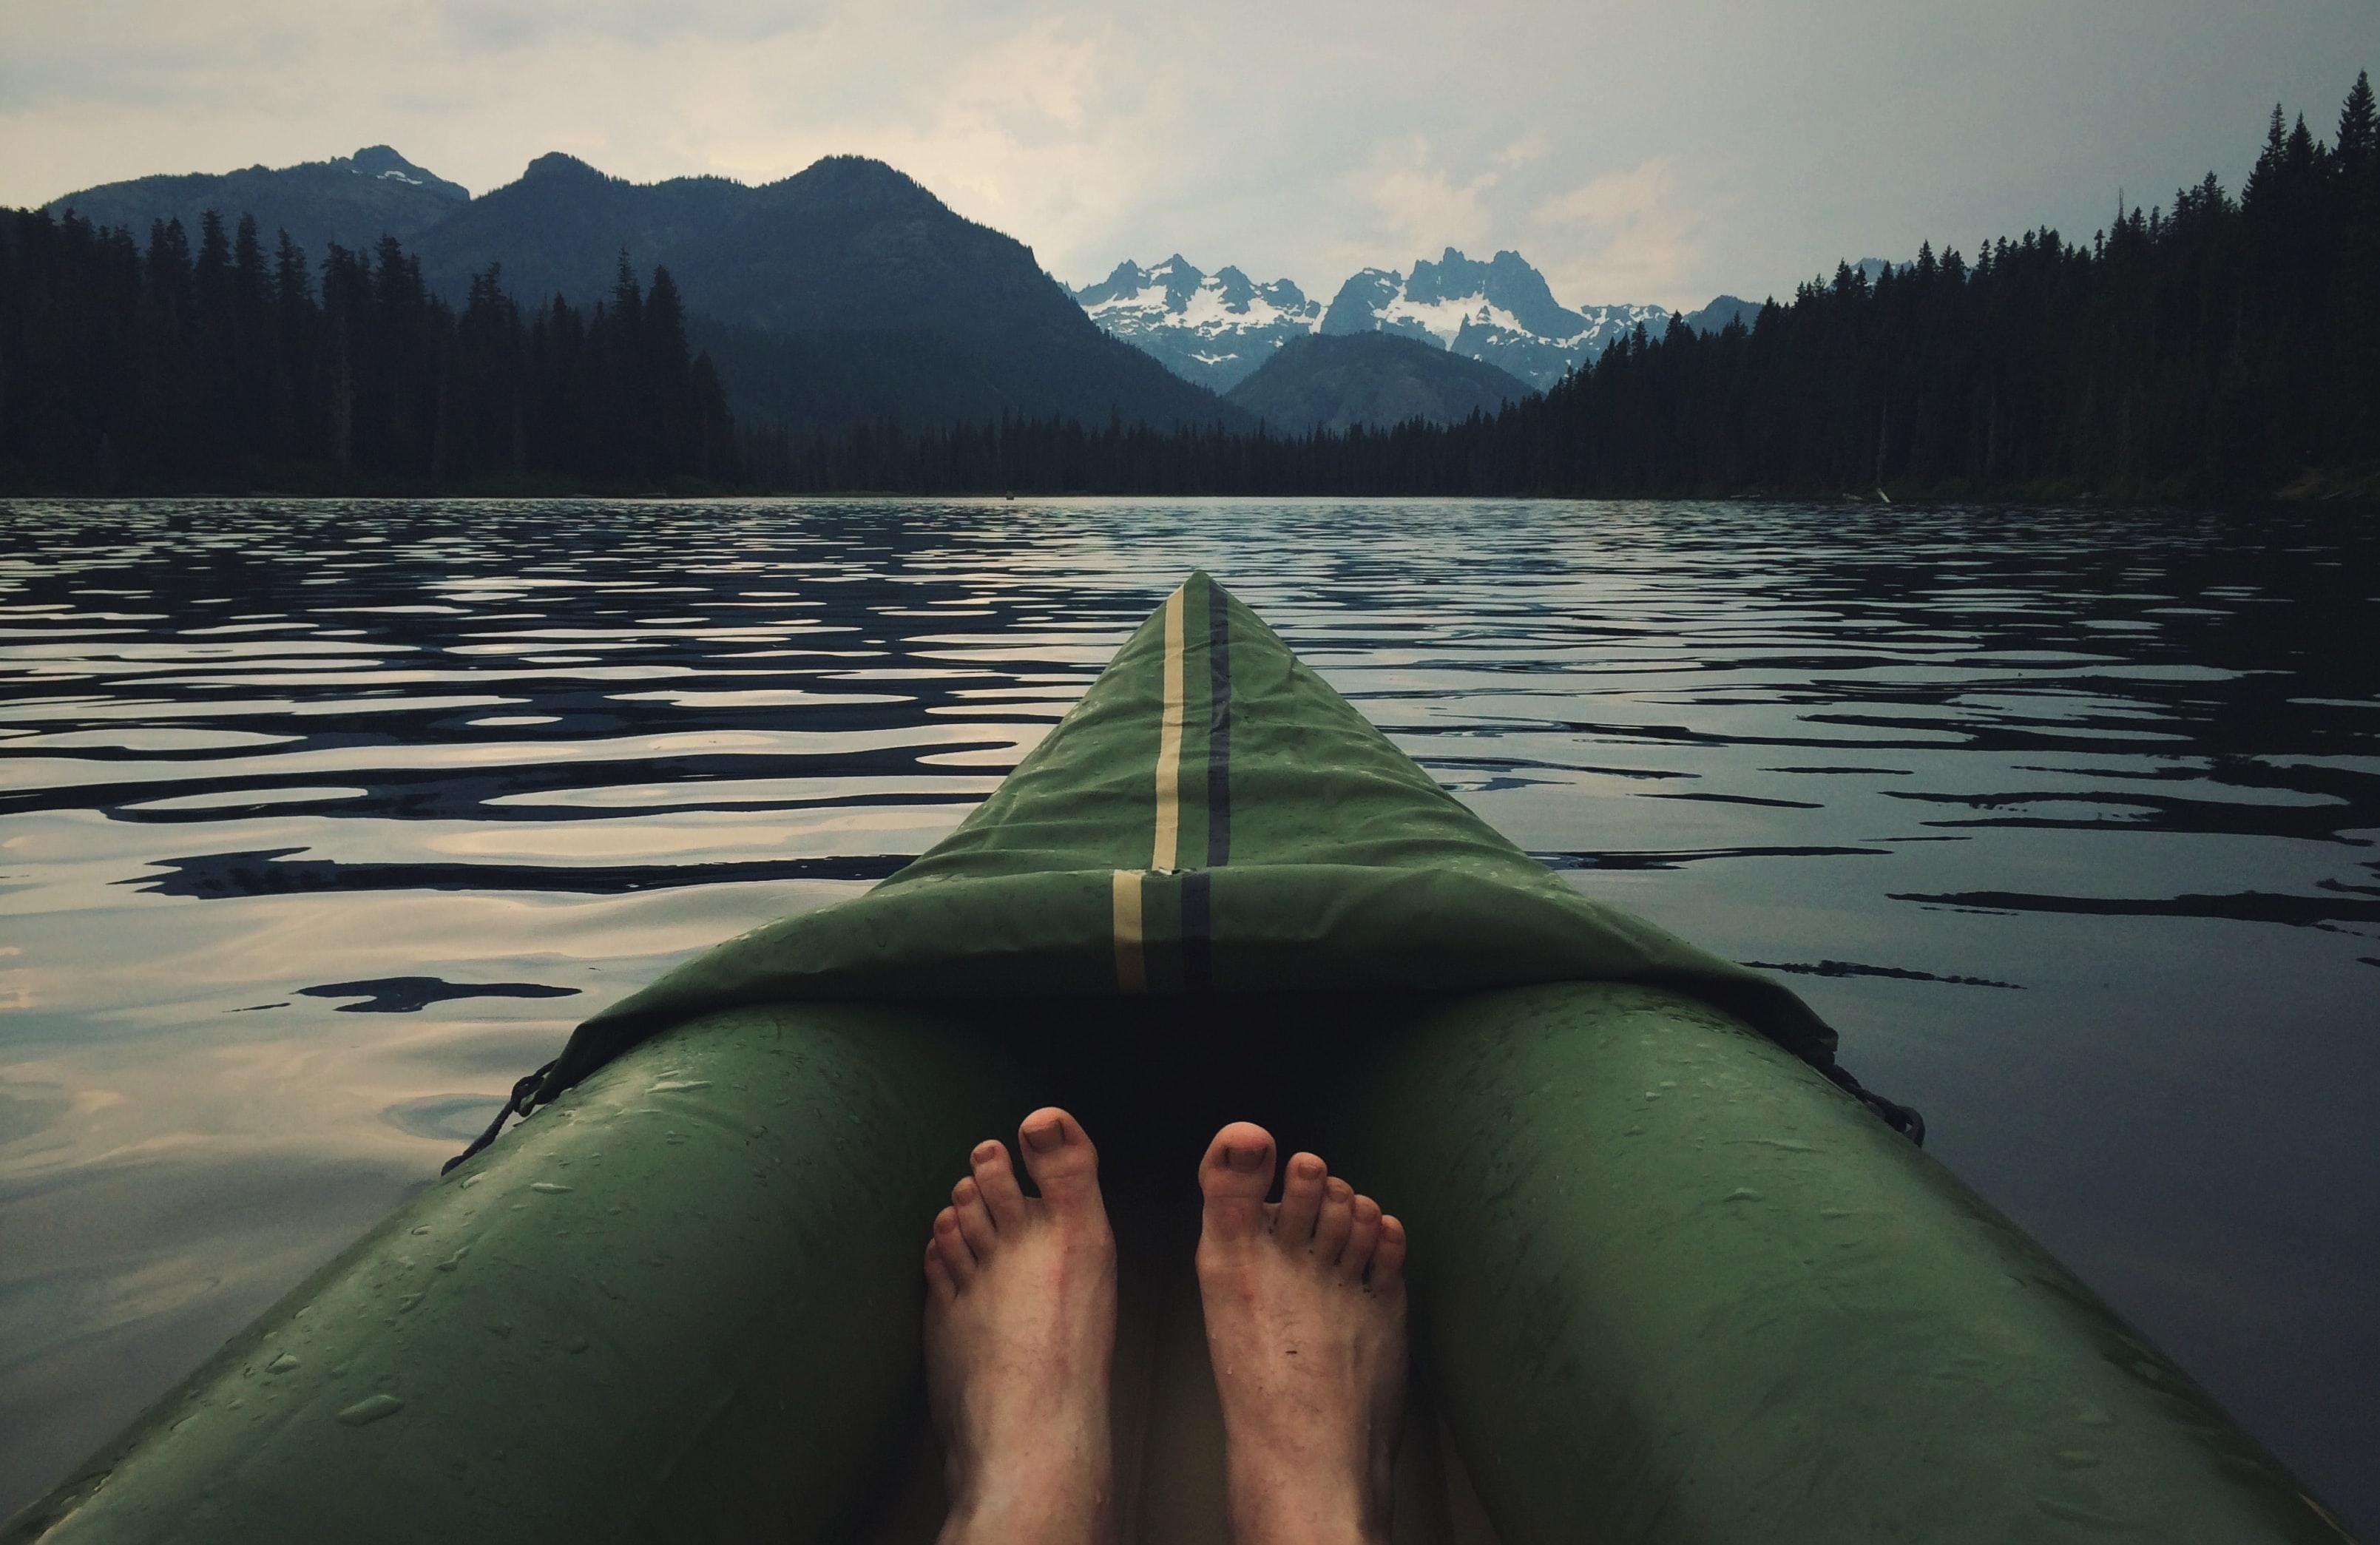 The view of a person's feet and the front of their canoe on a lake